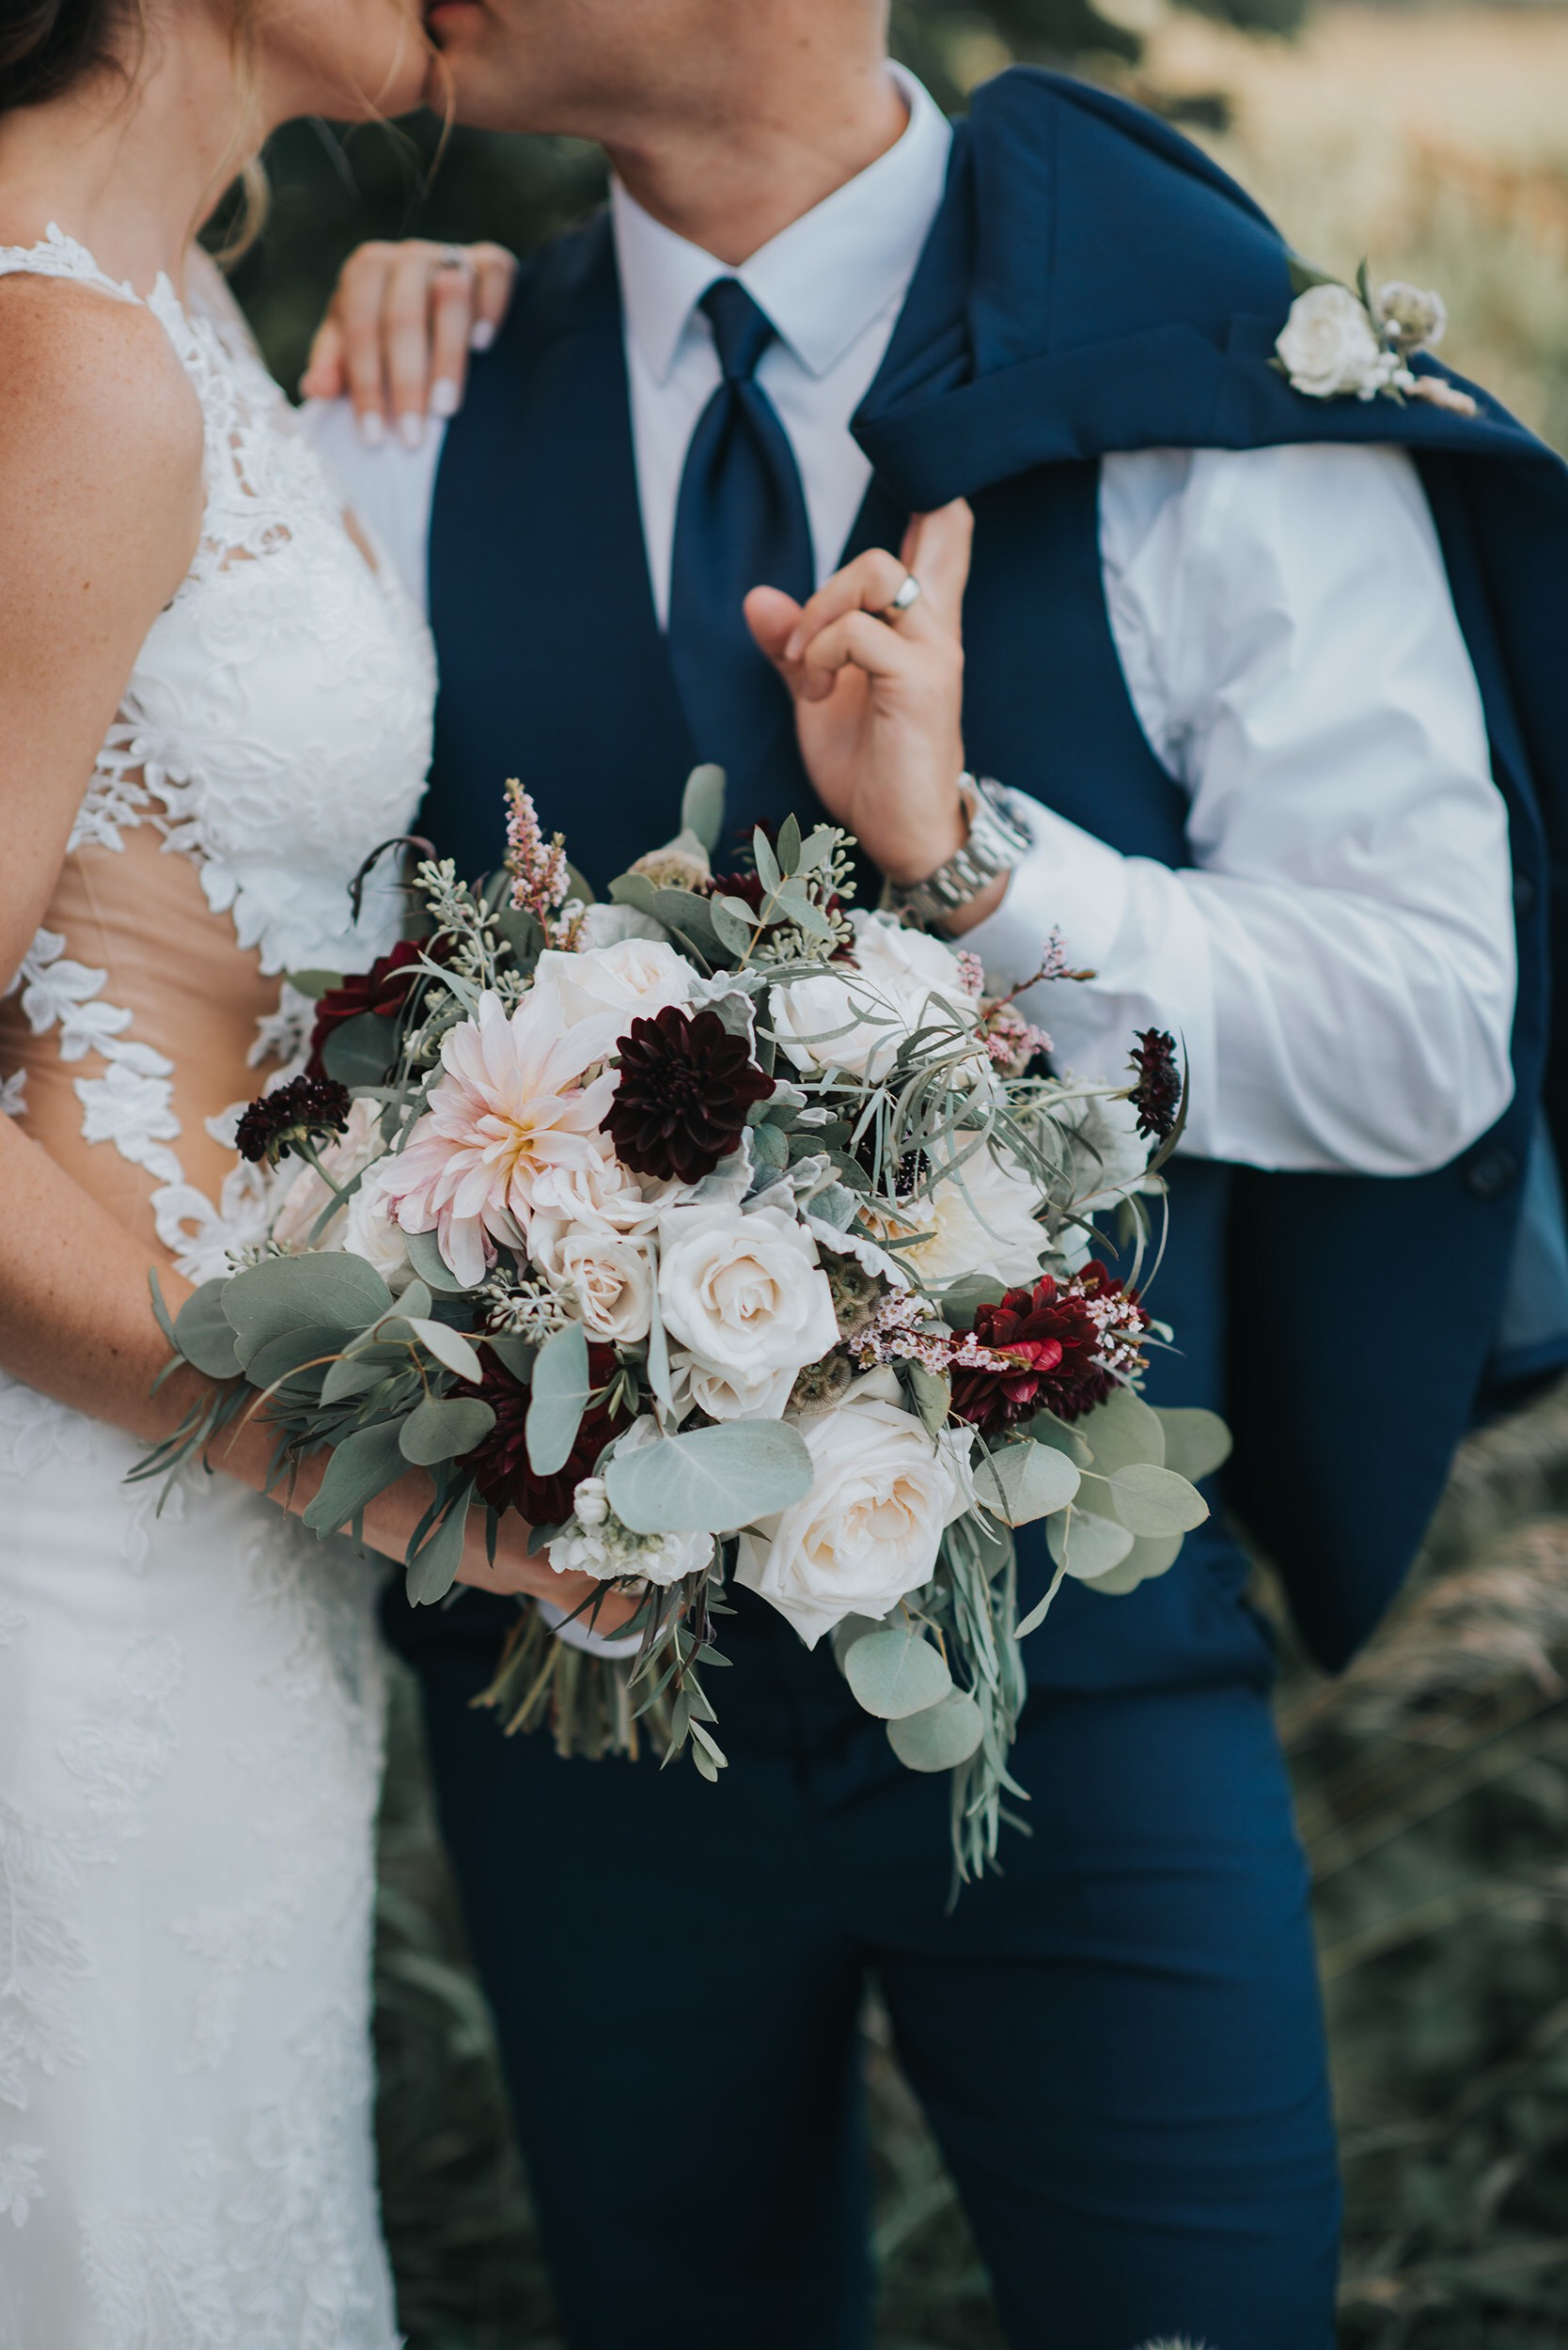 Neutrals with greenery and burgundy dahlias